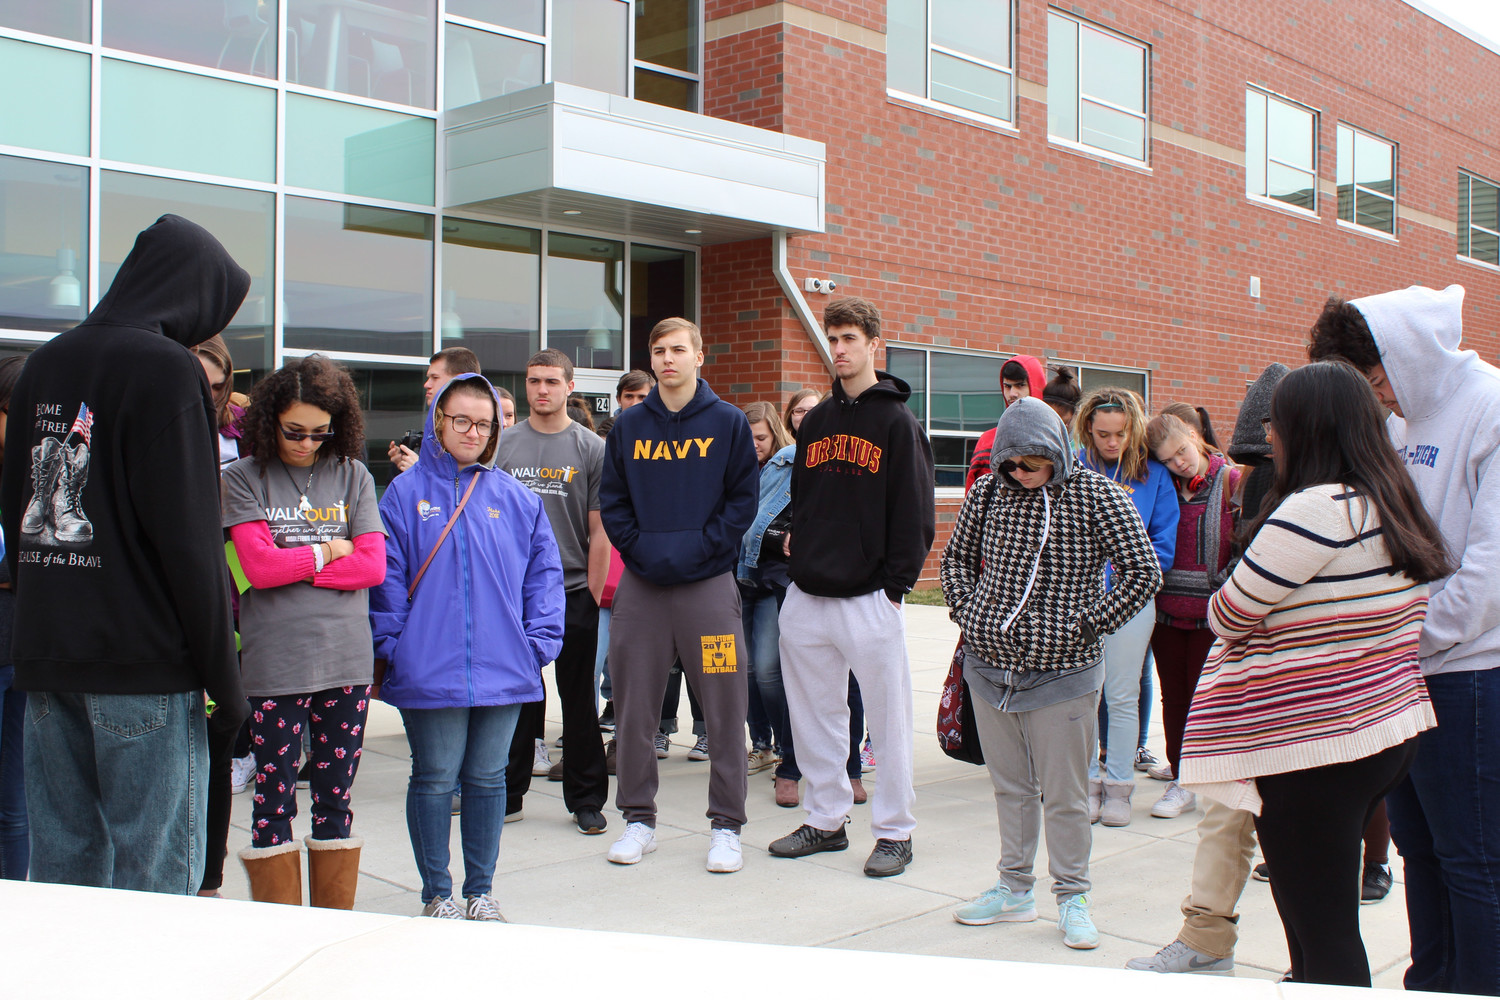 Seventy-eight students participated in the walkout, including Kyle Truesdale and Ryan Hughes, both in sweatpants. Organizers said the students came from a variety of student clubs and sports teams. Truesdale and Hughes play on the basketball team.